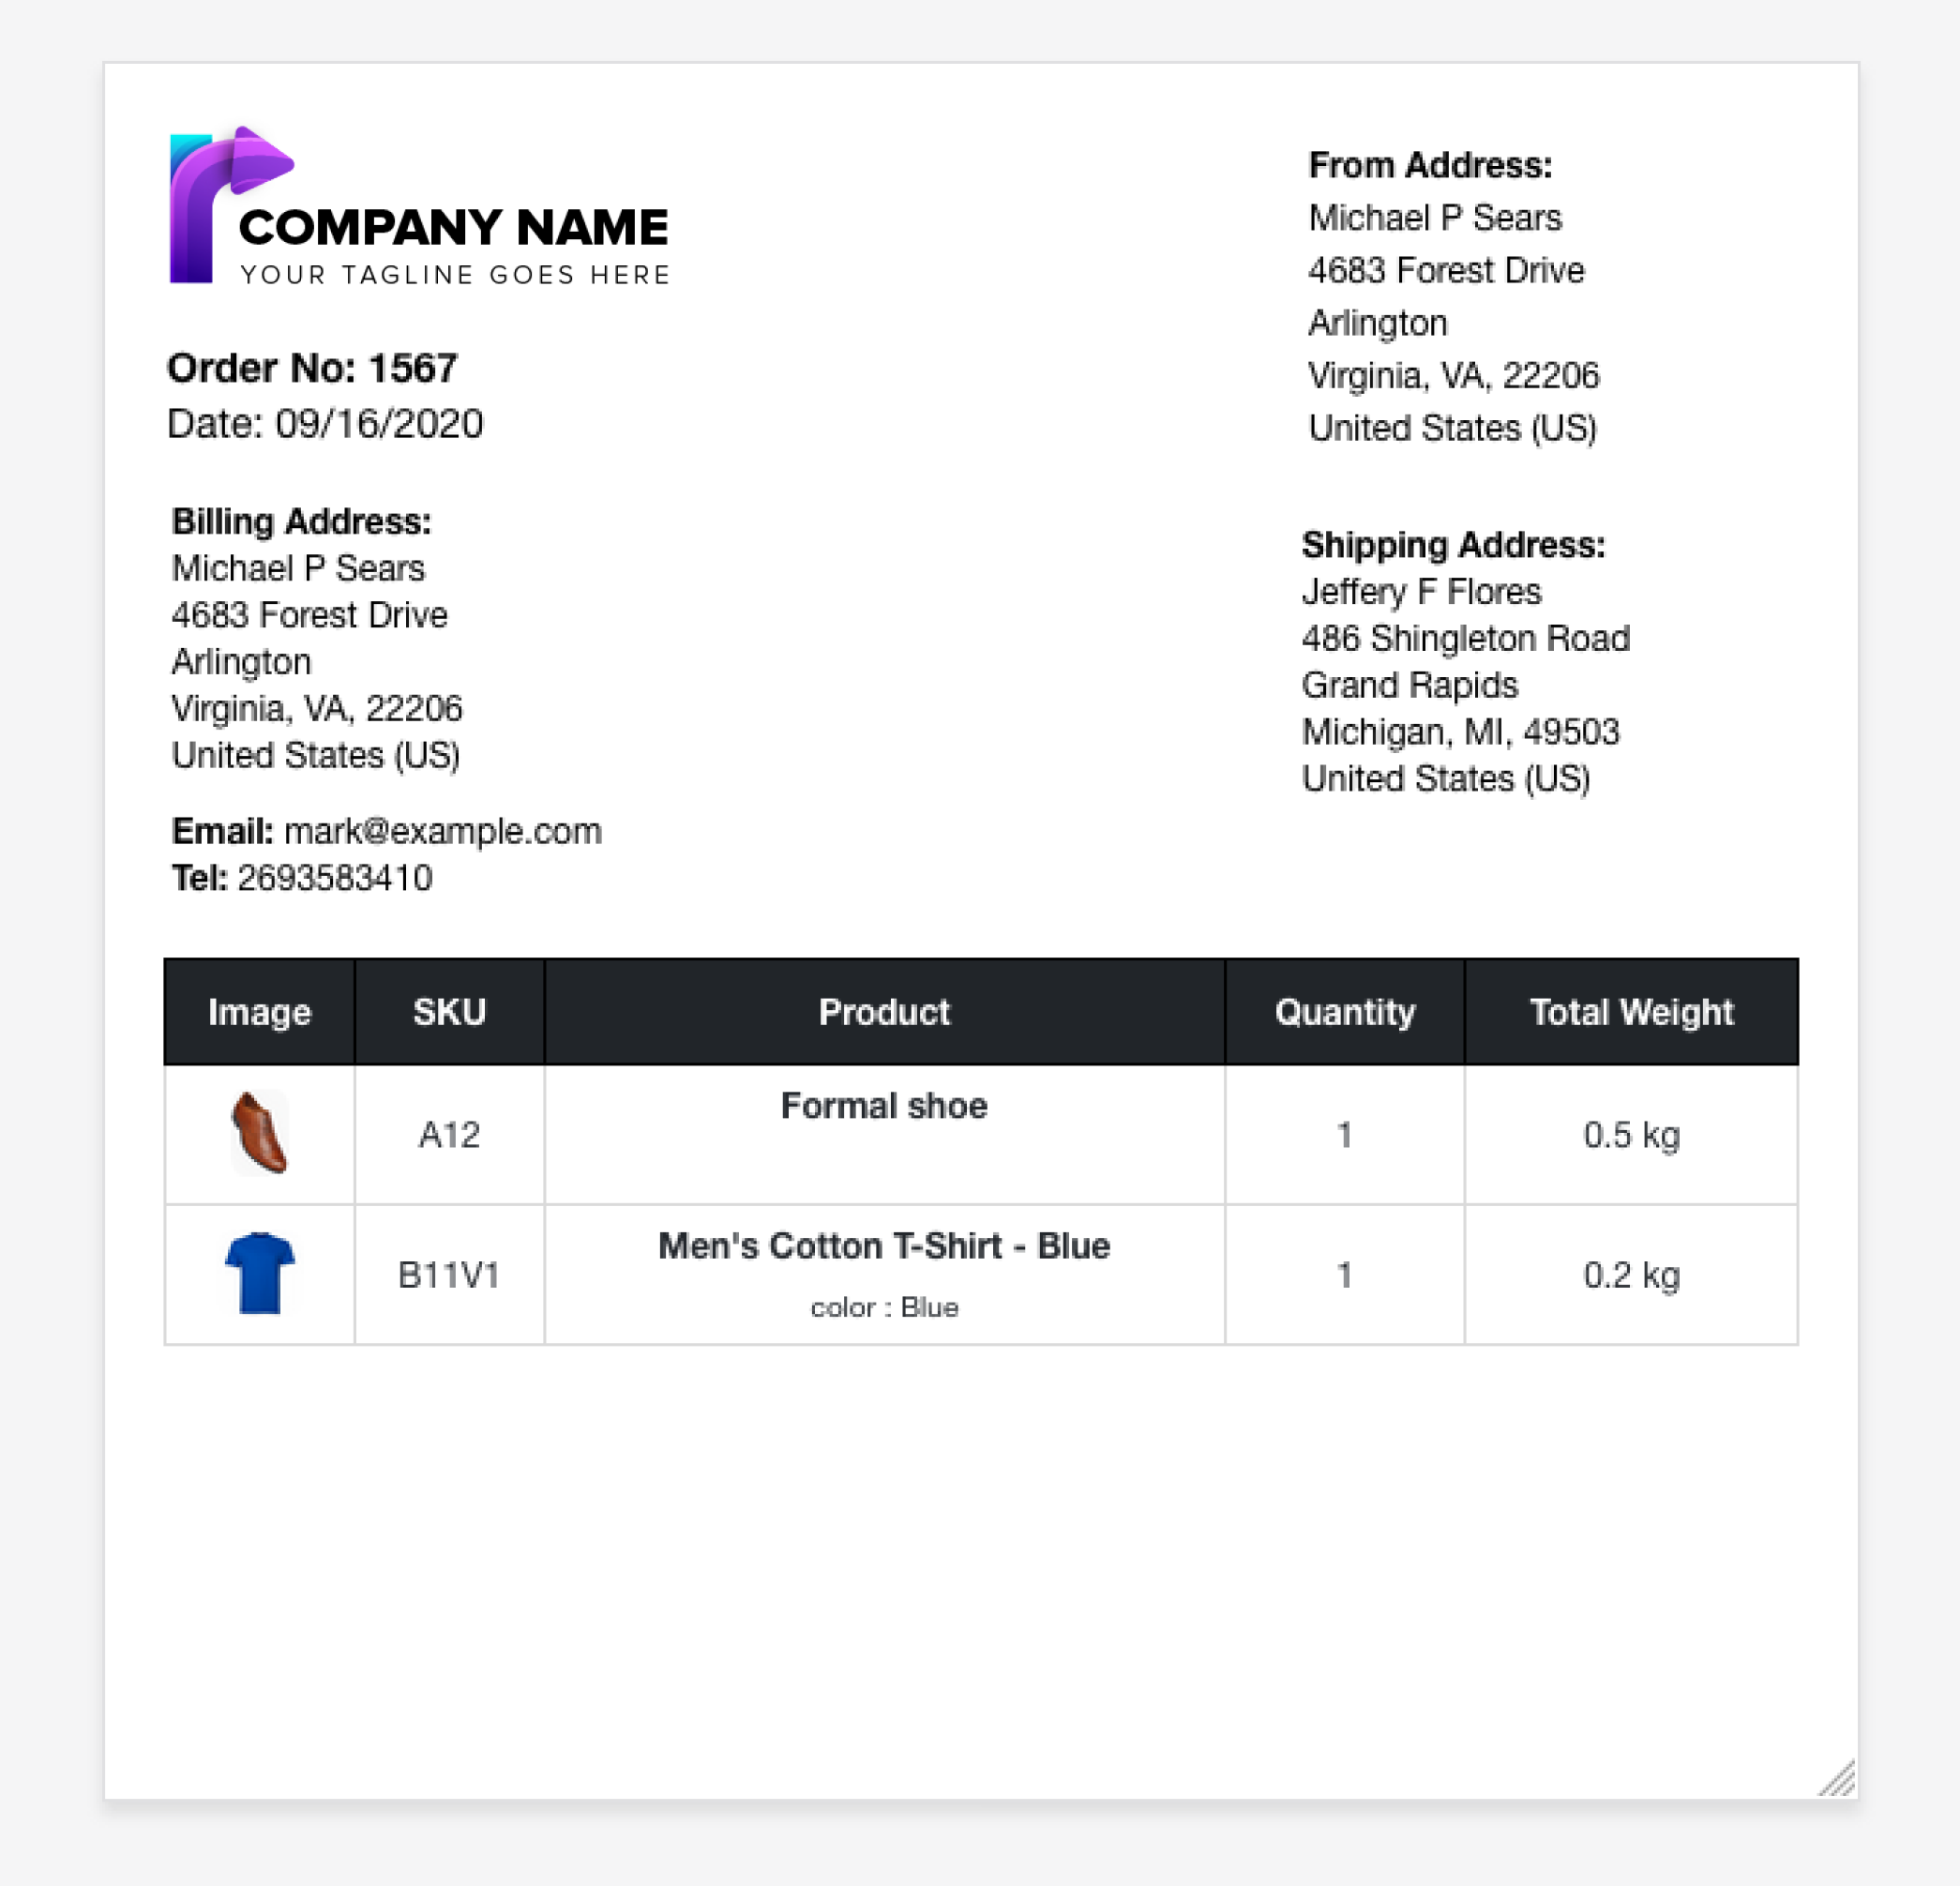 WooCommerce PDF Invoices, Packing Slips, Delivery Notes & Shipping Labels